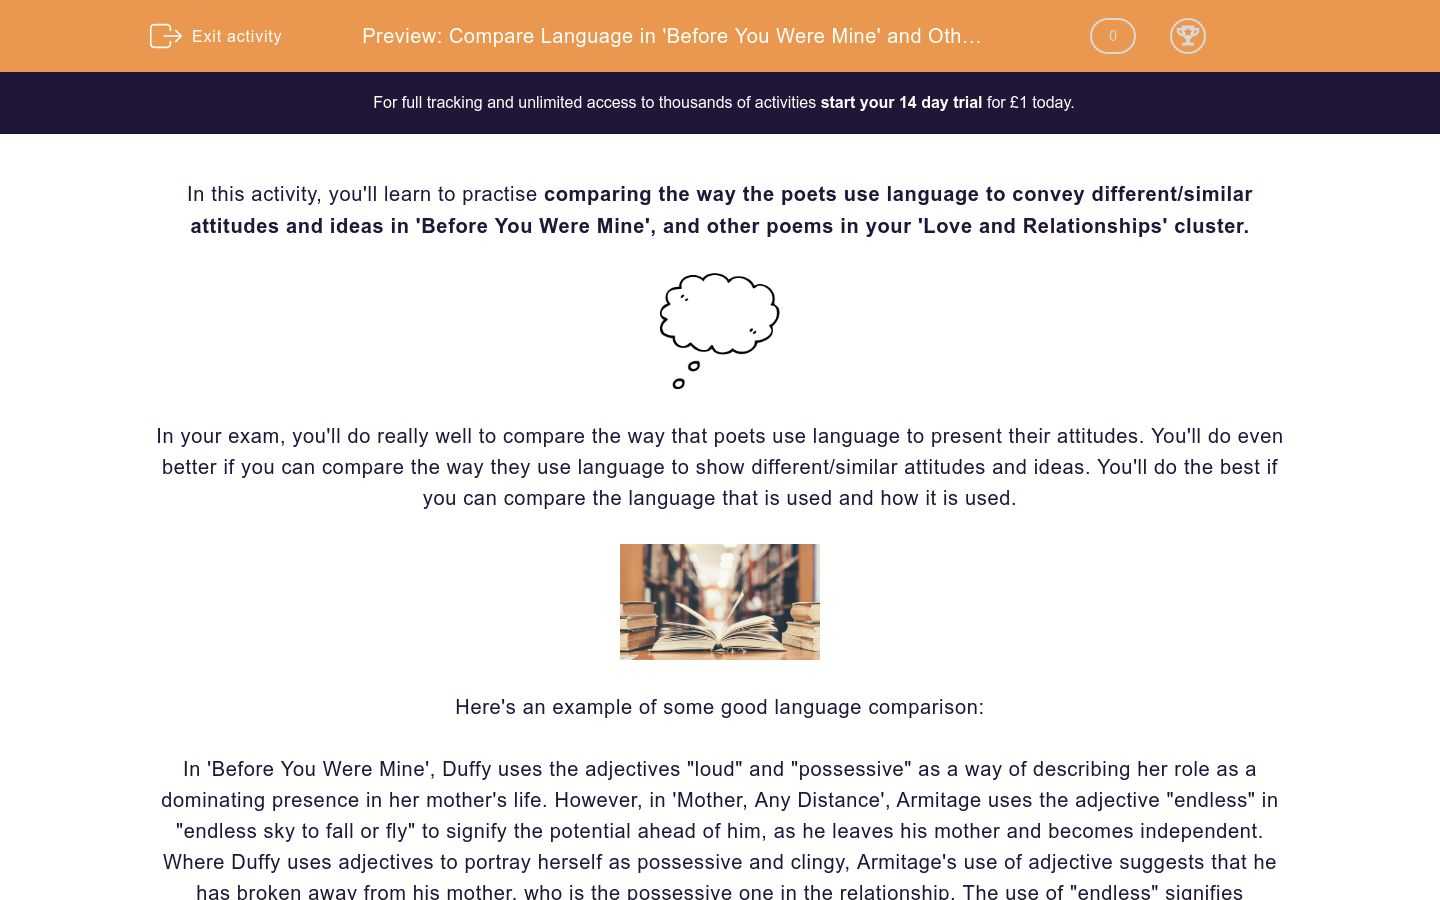 'Compare Language in 'Before You Were Mine' and Other Poems' worksheet